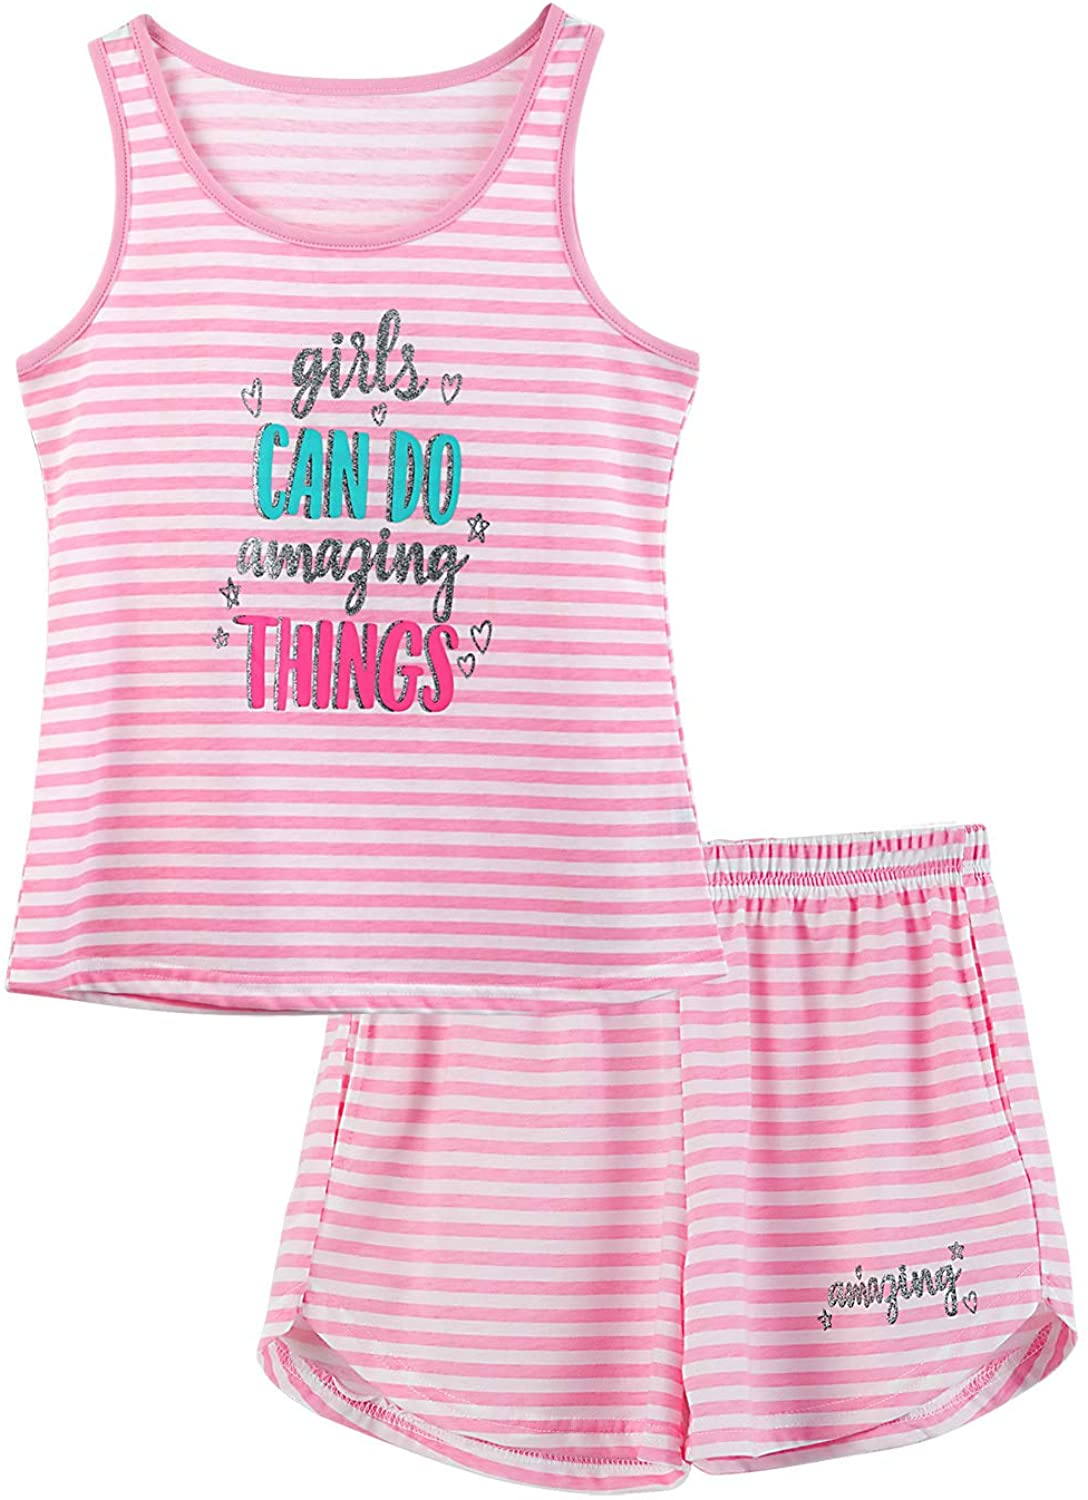 Girls Tank Top Pajamas Size 6 8 10 12 14 16 18 Summer Shorts Stripe PJS Set Big Kids Clothes for Tween//Teens